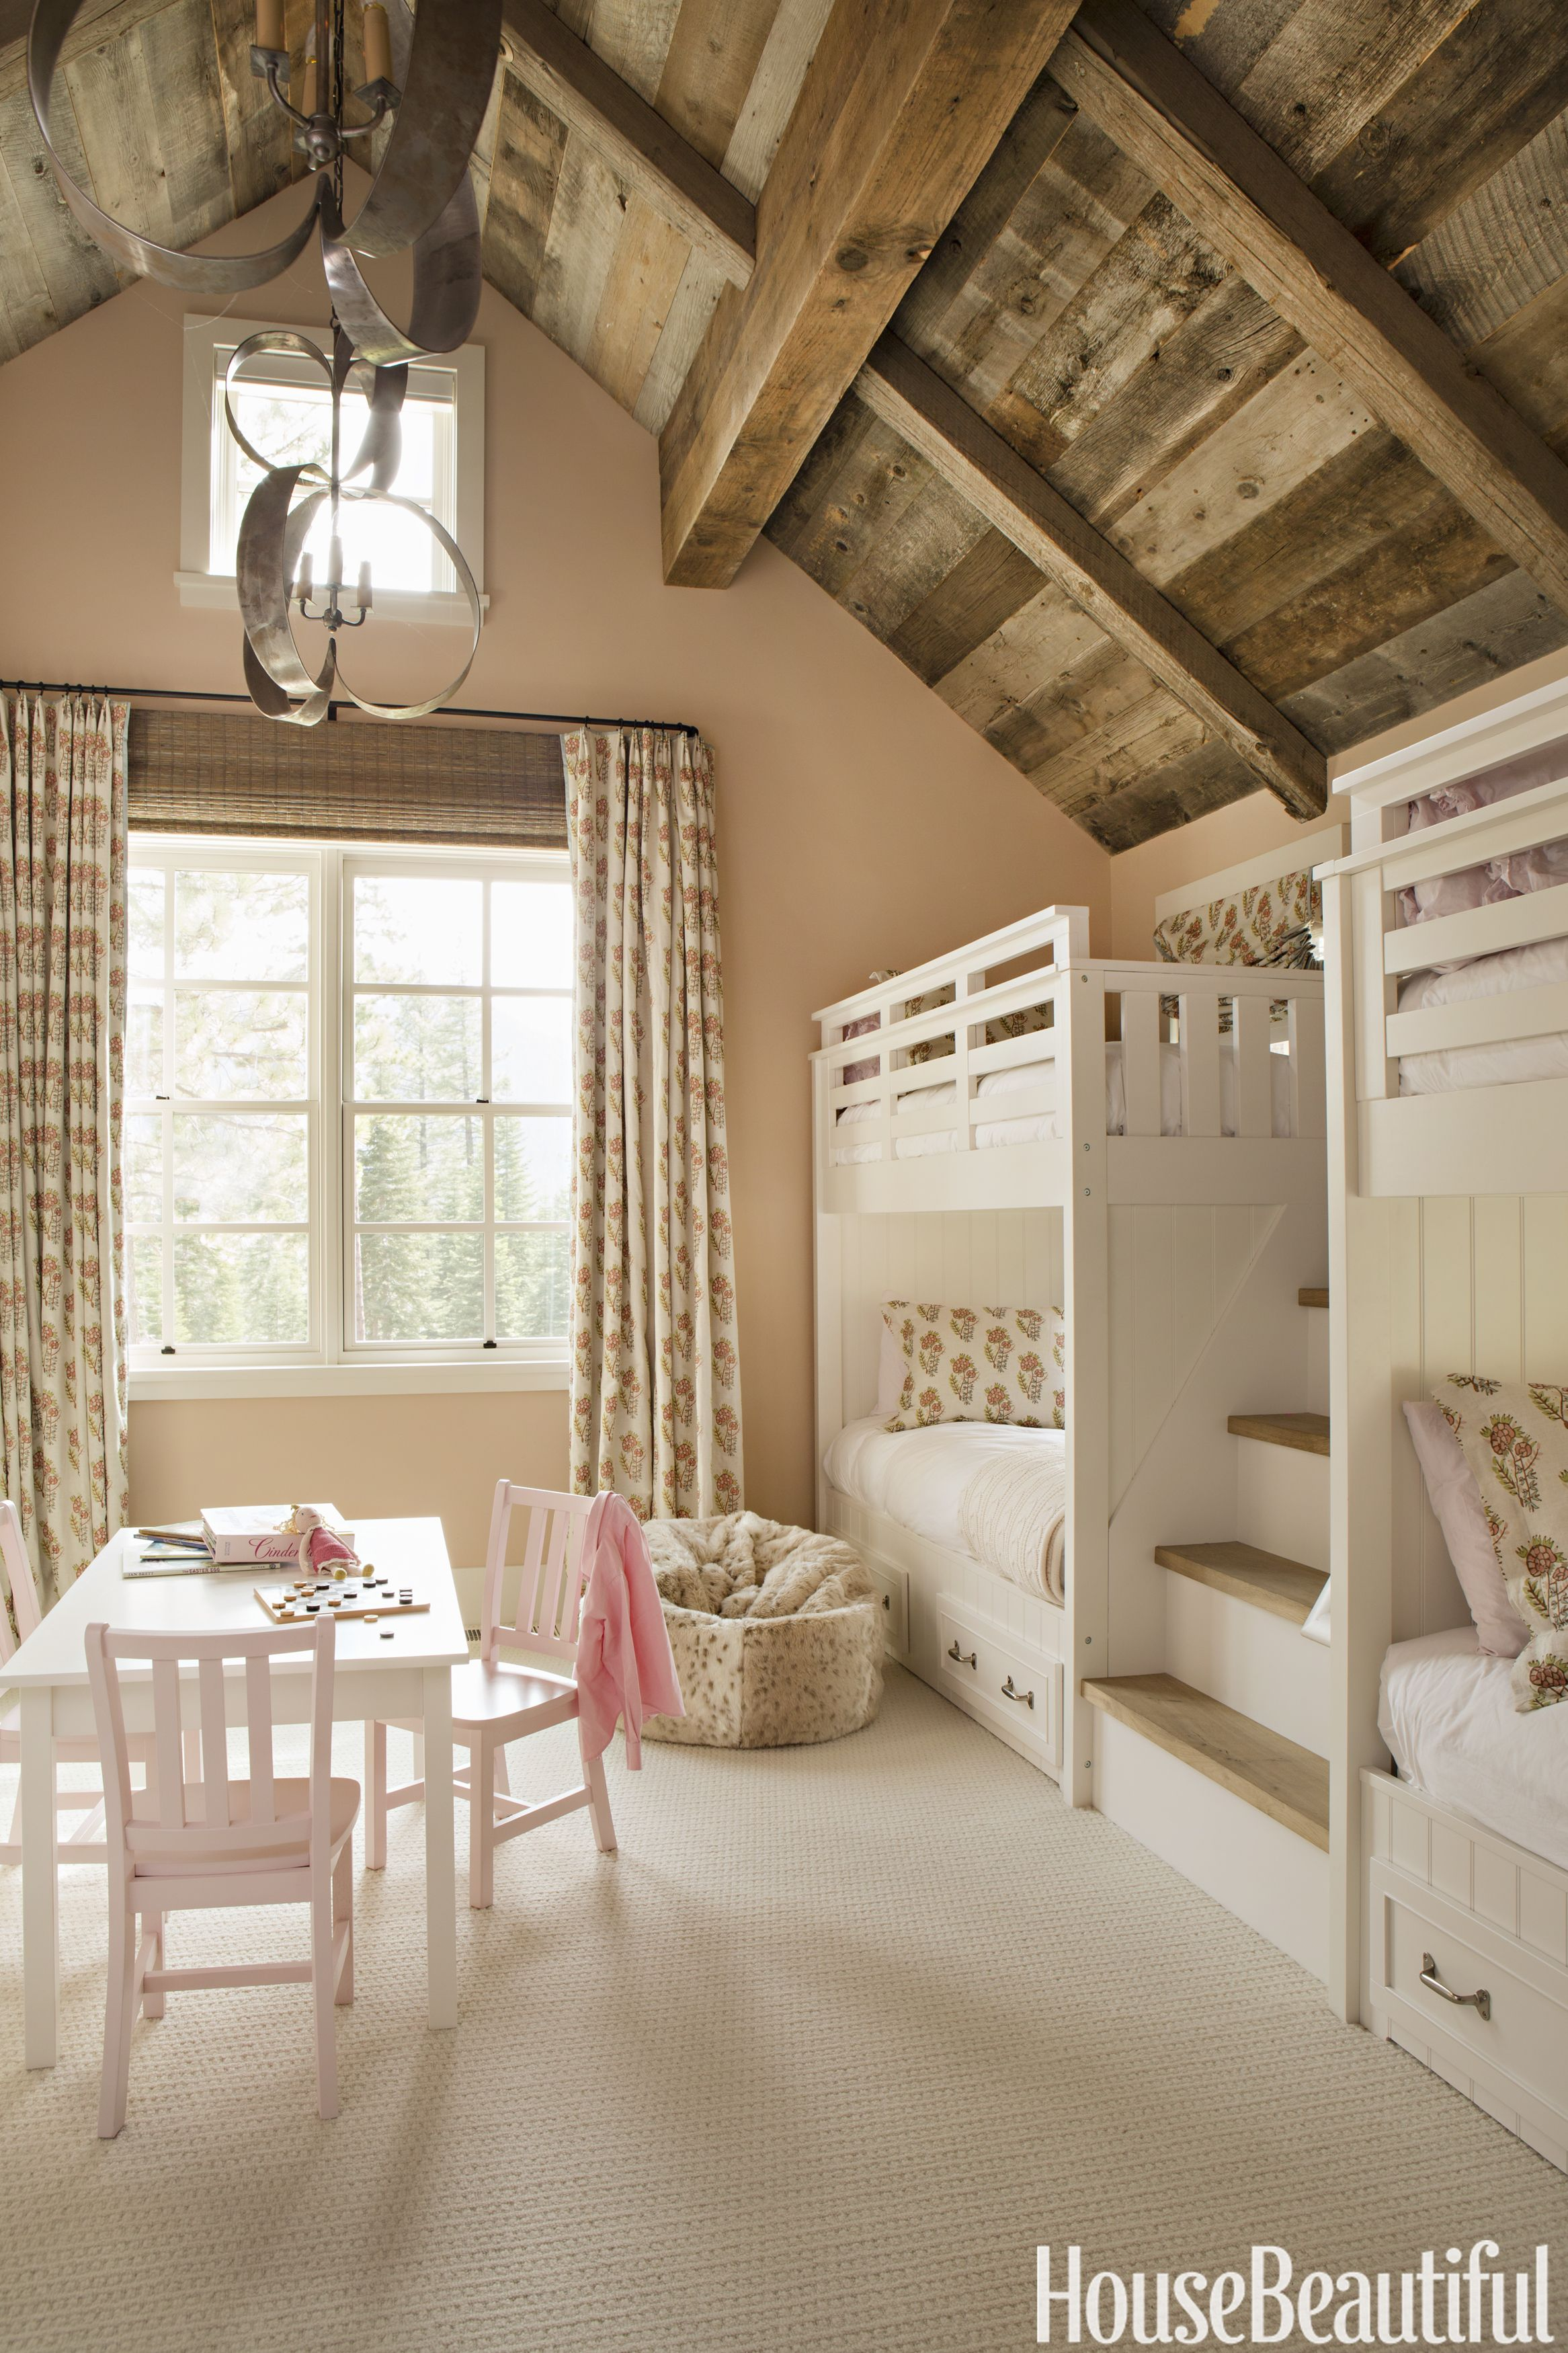 House beautiful designer bedrooms pictures